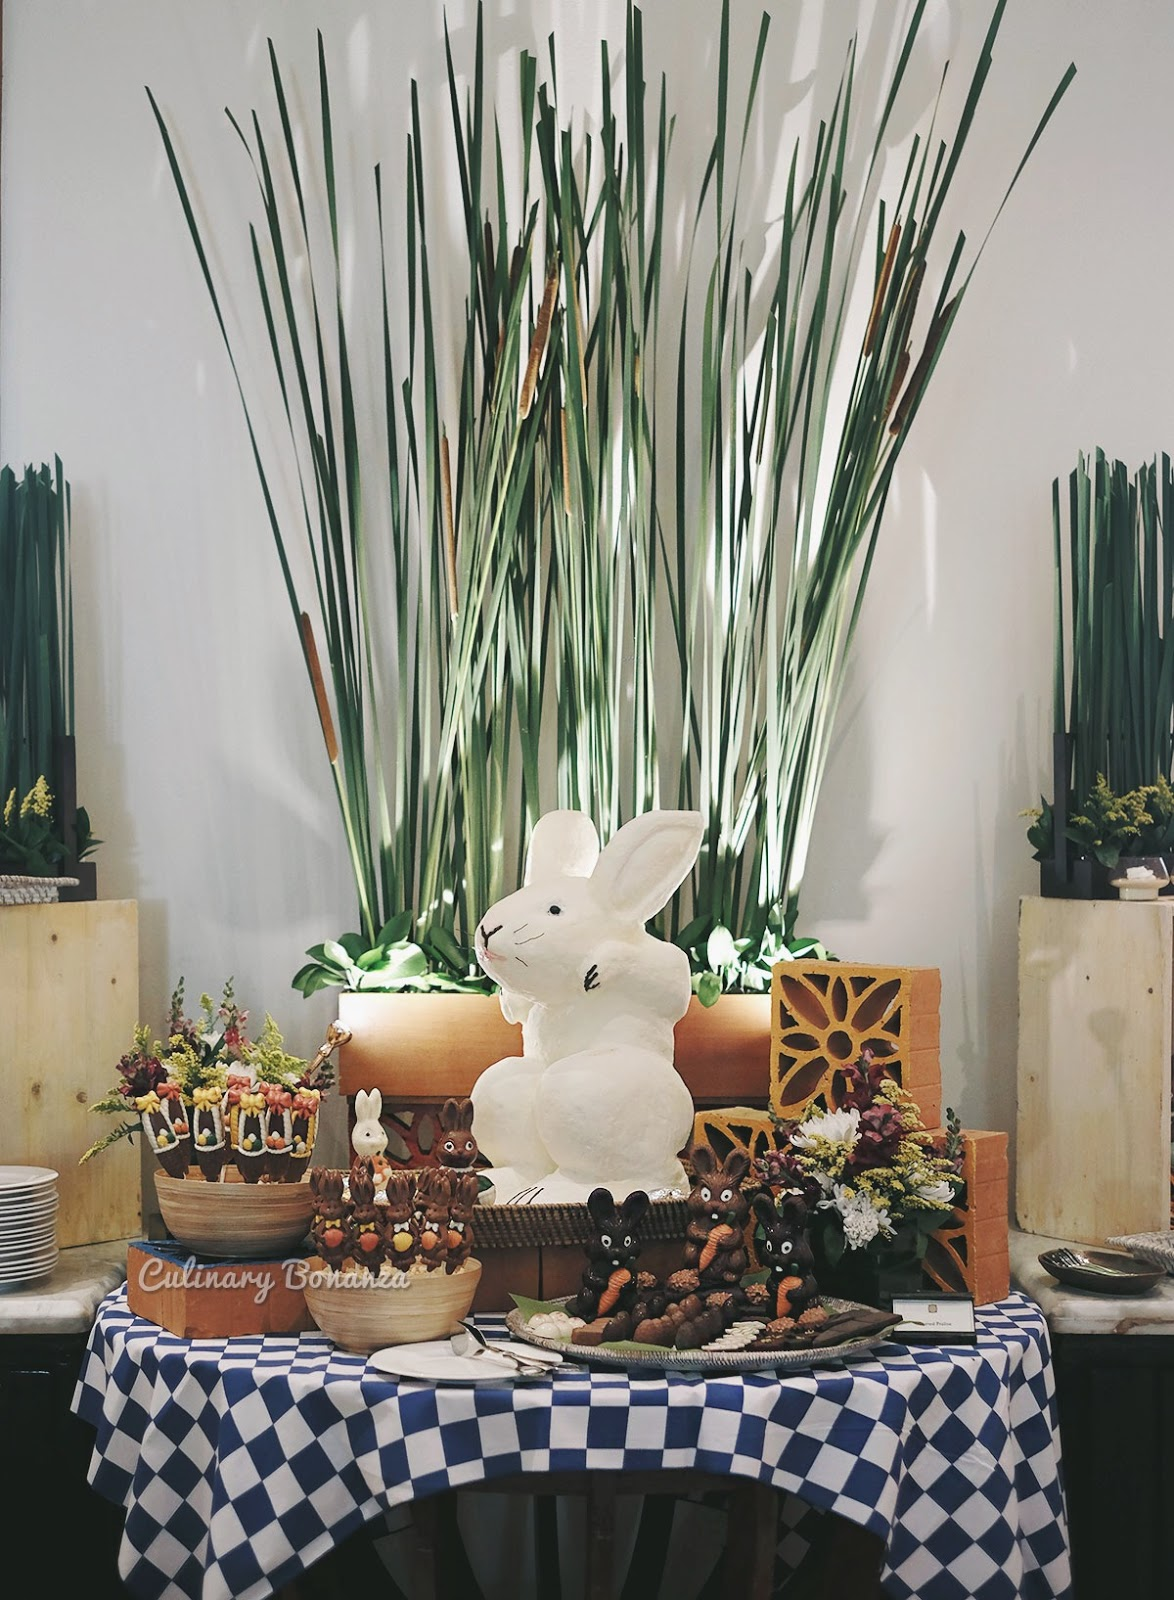 Easter Brunch at The Dharmawangsa Jakarta (www.culinarybonanza.com)